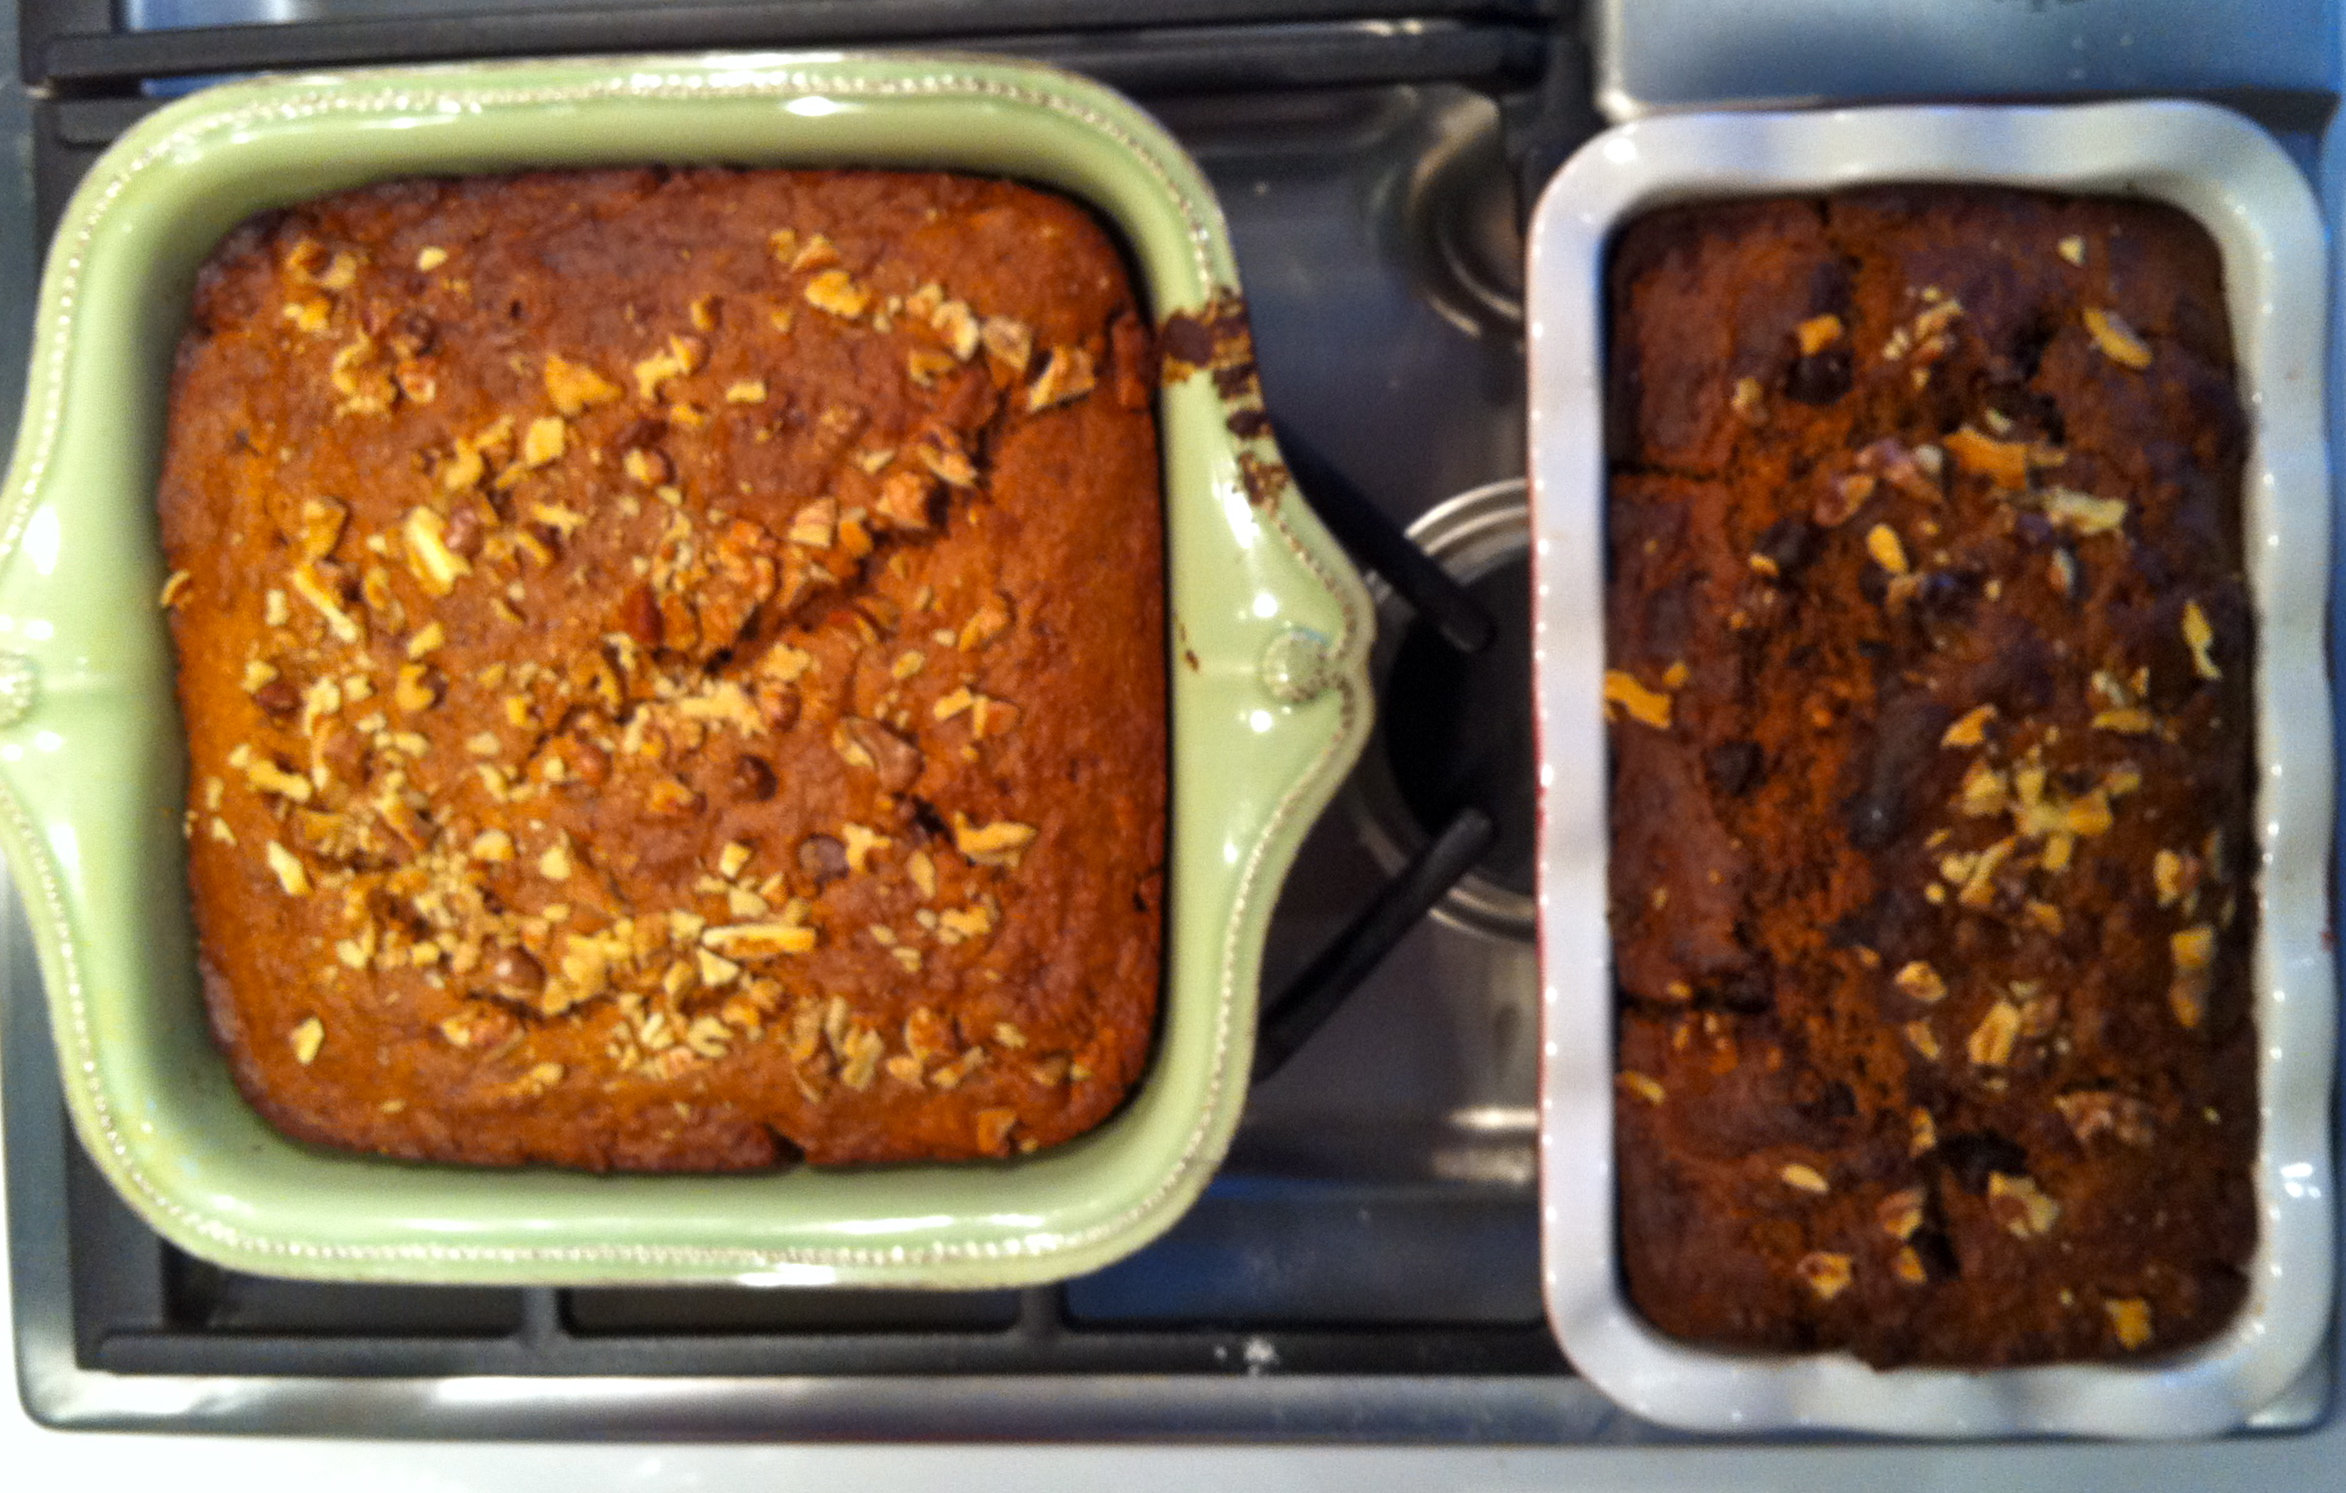 Here are both of my vegan banana breads and they smell delicious!